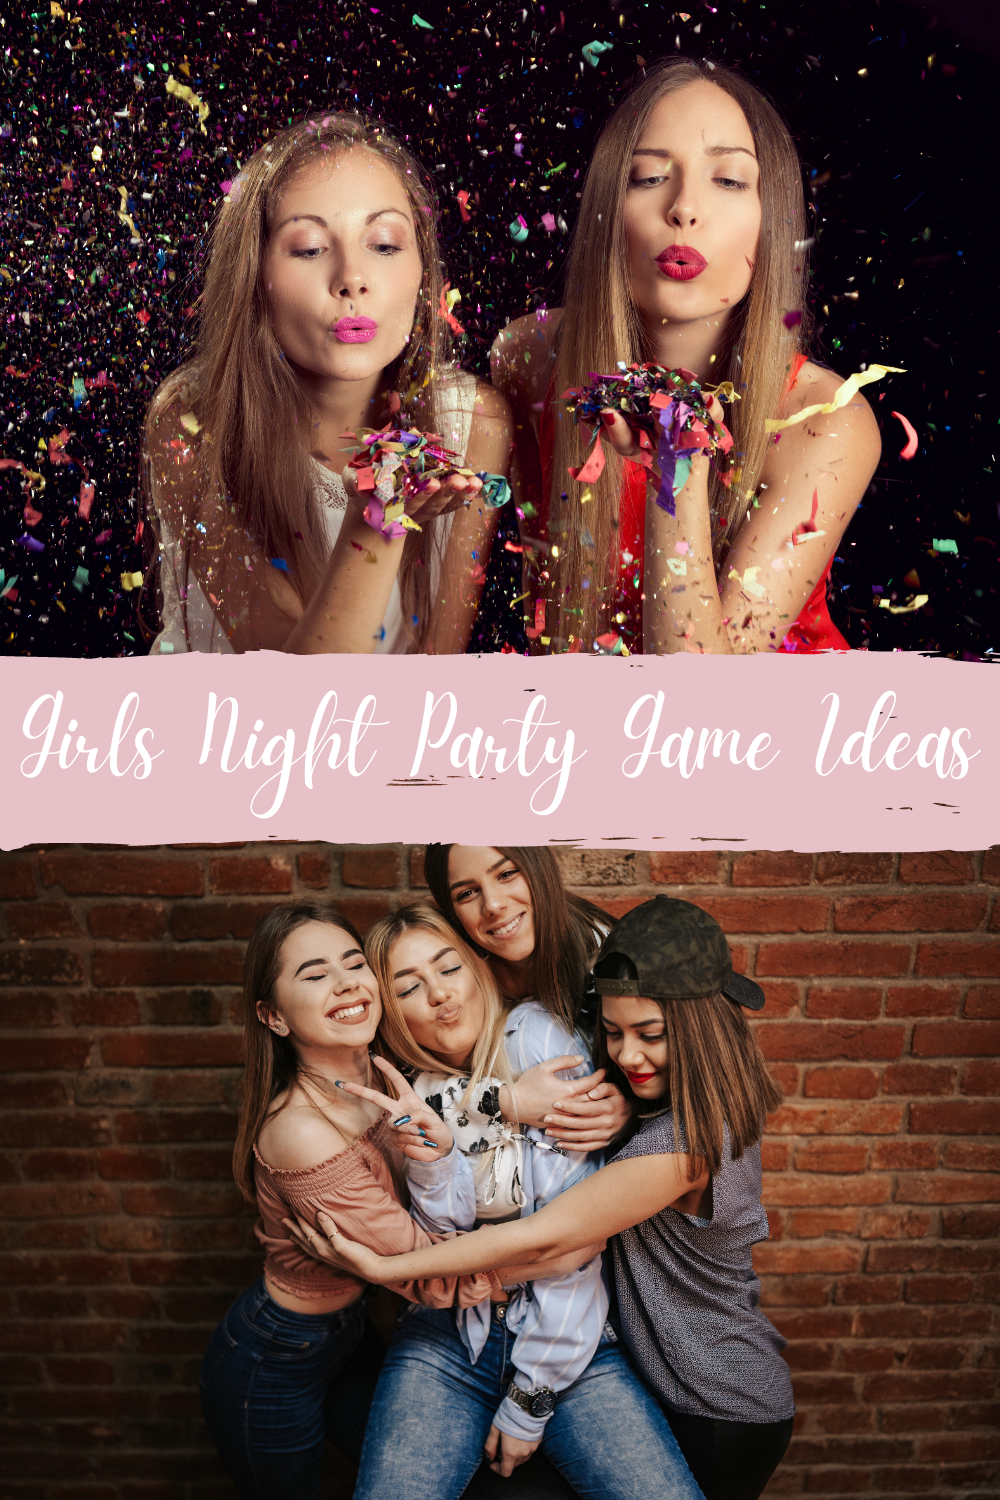 Girls Night Party Game Ideas